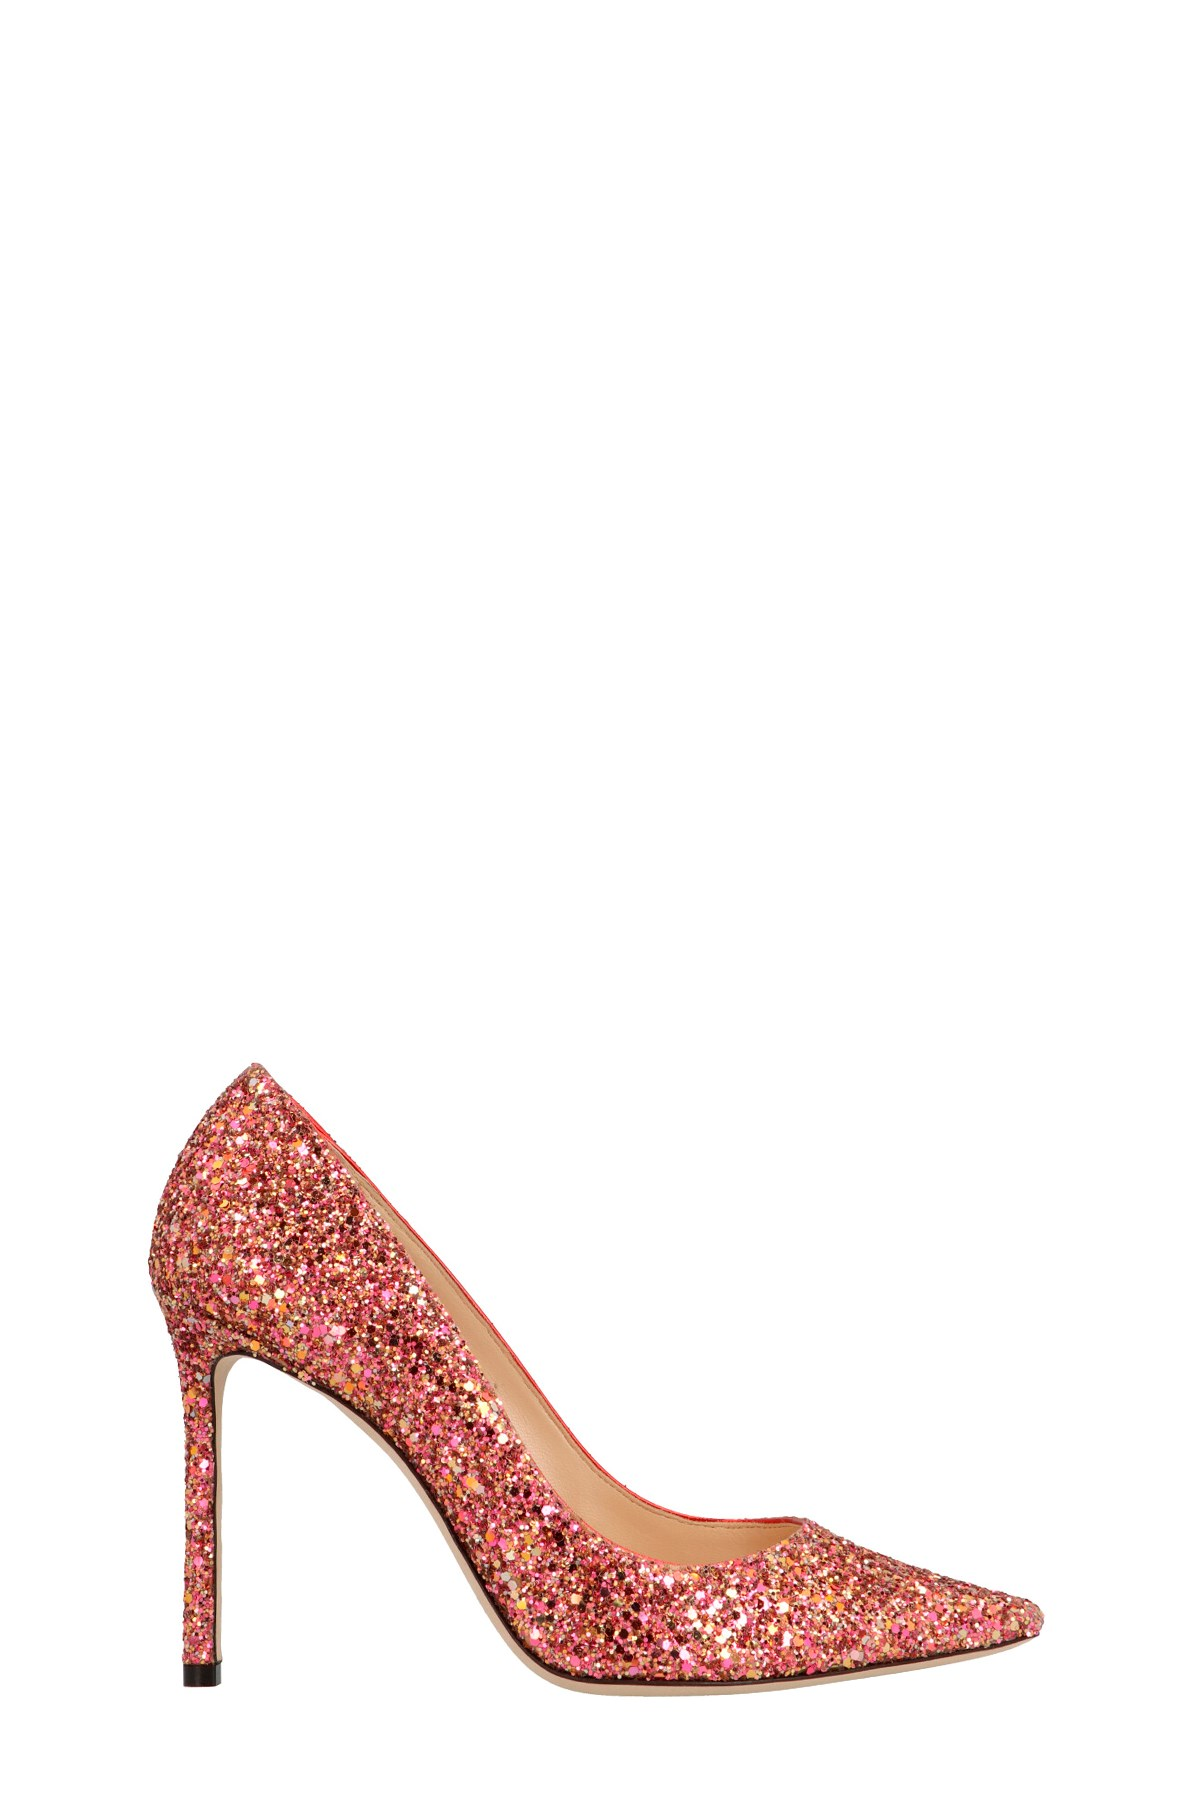 jimmy choo 'Romy 85' pumps available on